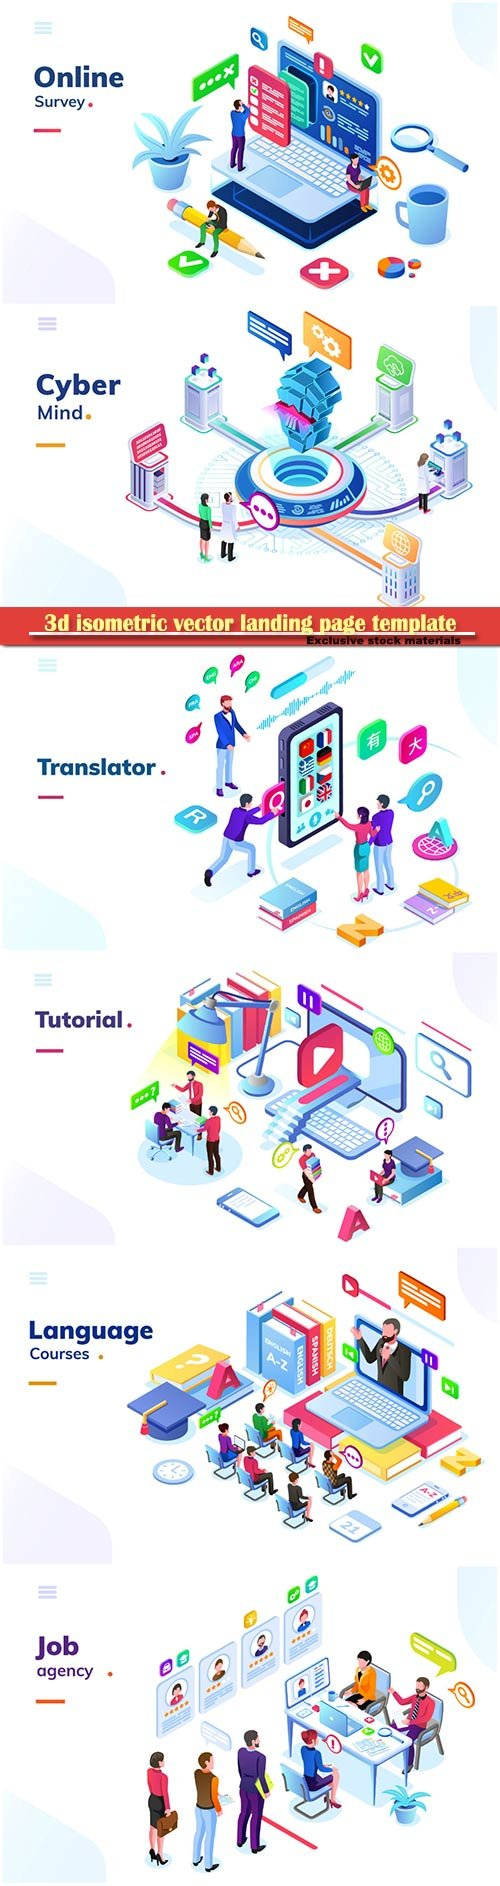 3d isometric vector landing page template # 5